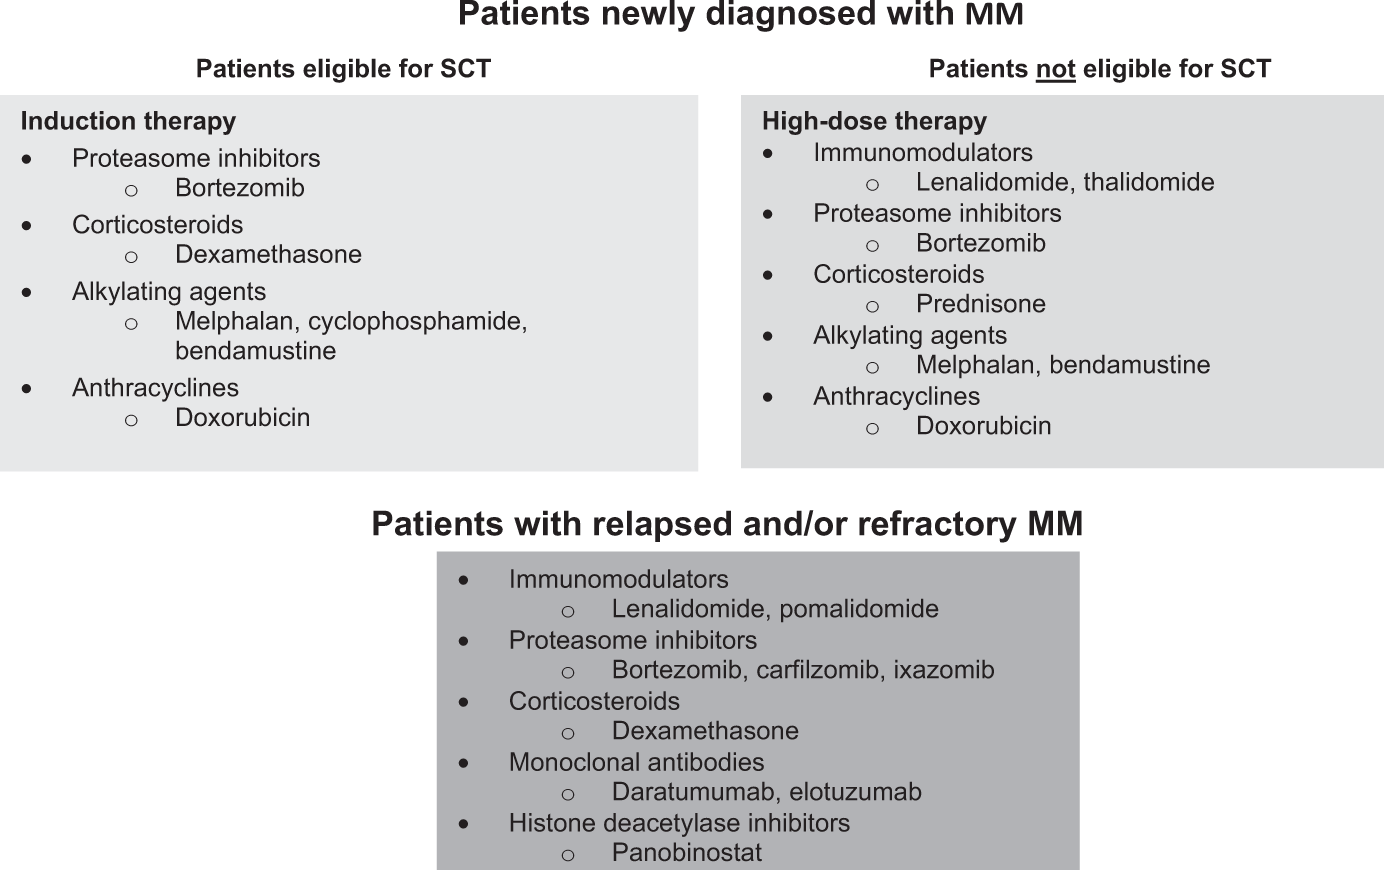 Management of cardiovascular risk in patients with multiple